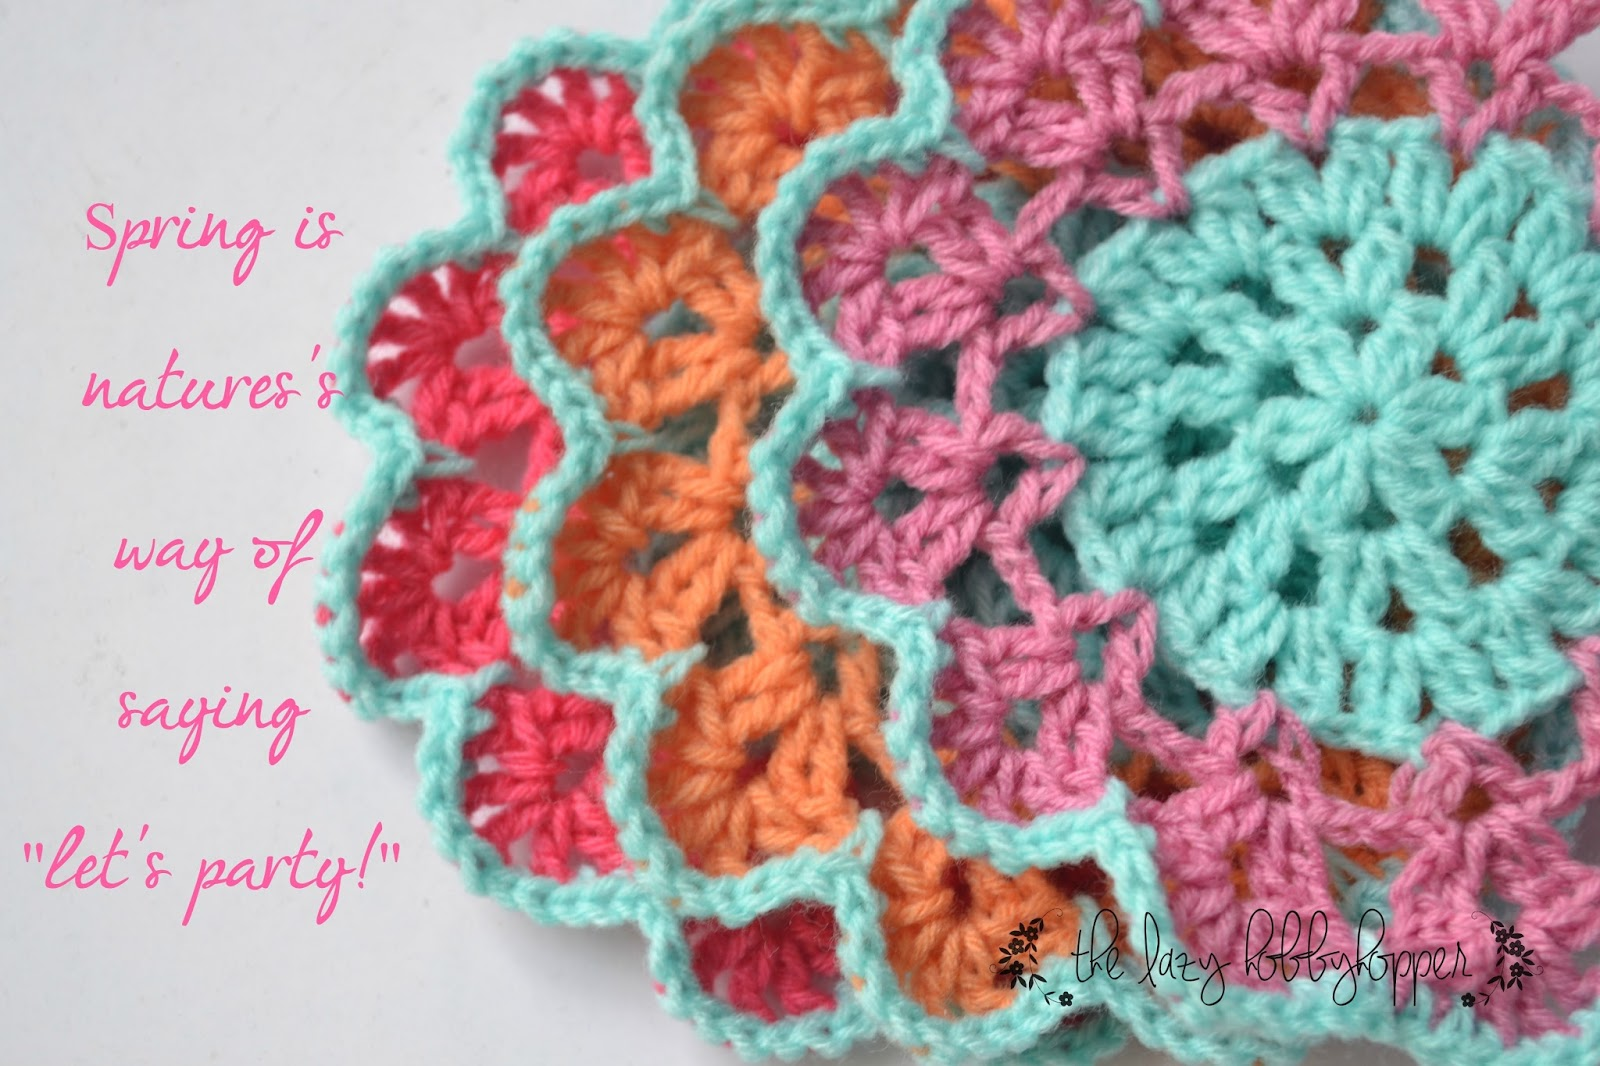 The Lazy Hobbyhopper: Spring blossom coasters - free pattern